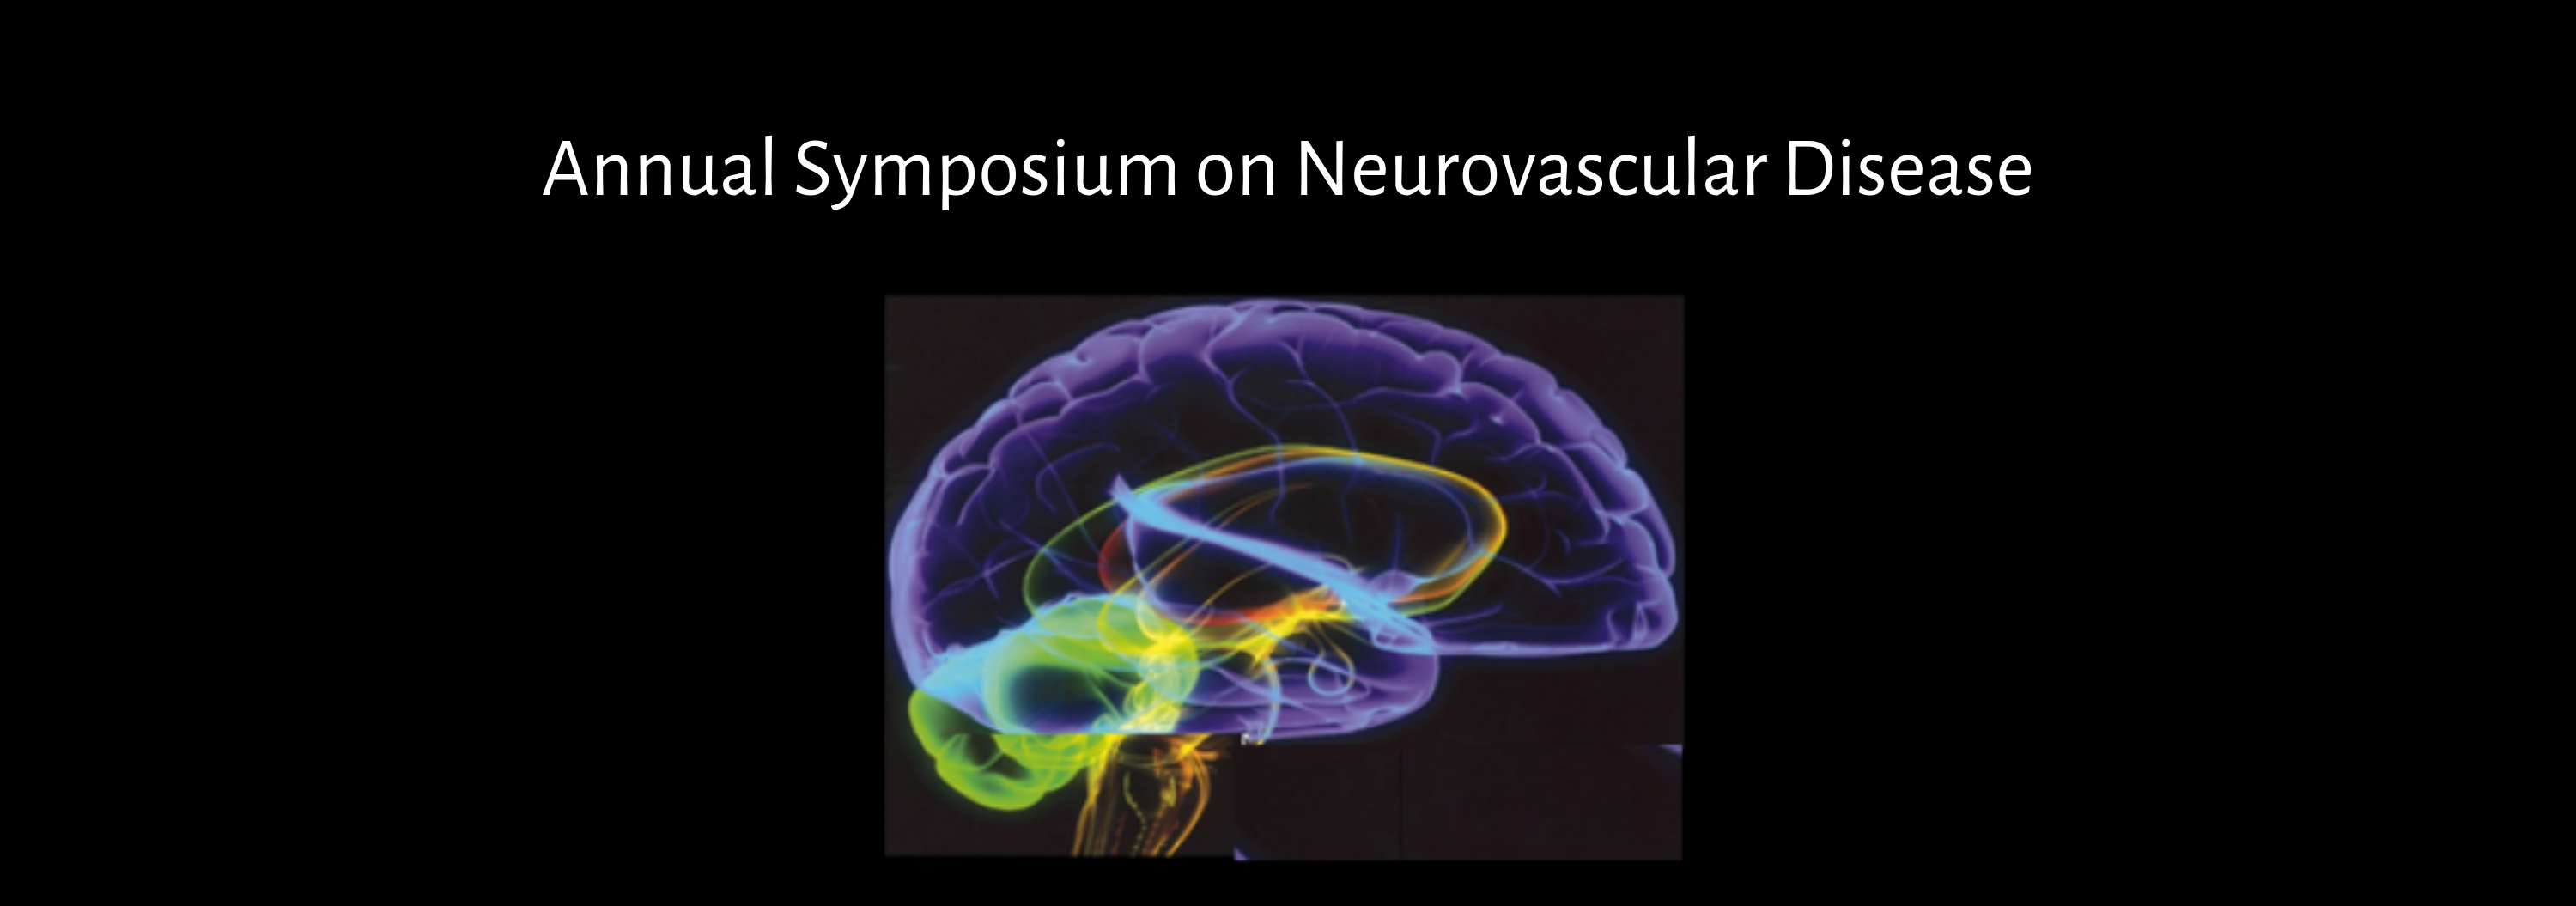 12th Annual Symposium on Neurovascular Disease: Technology and Trials Update Banner